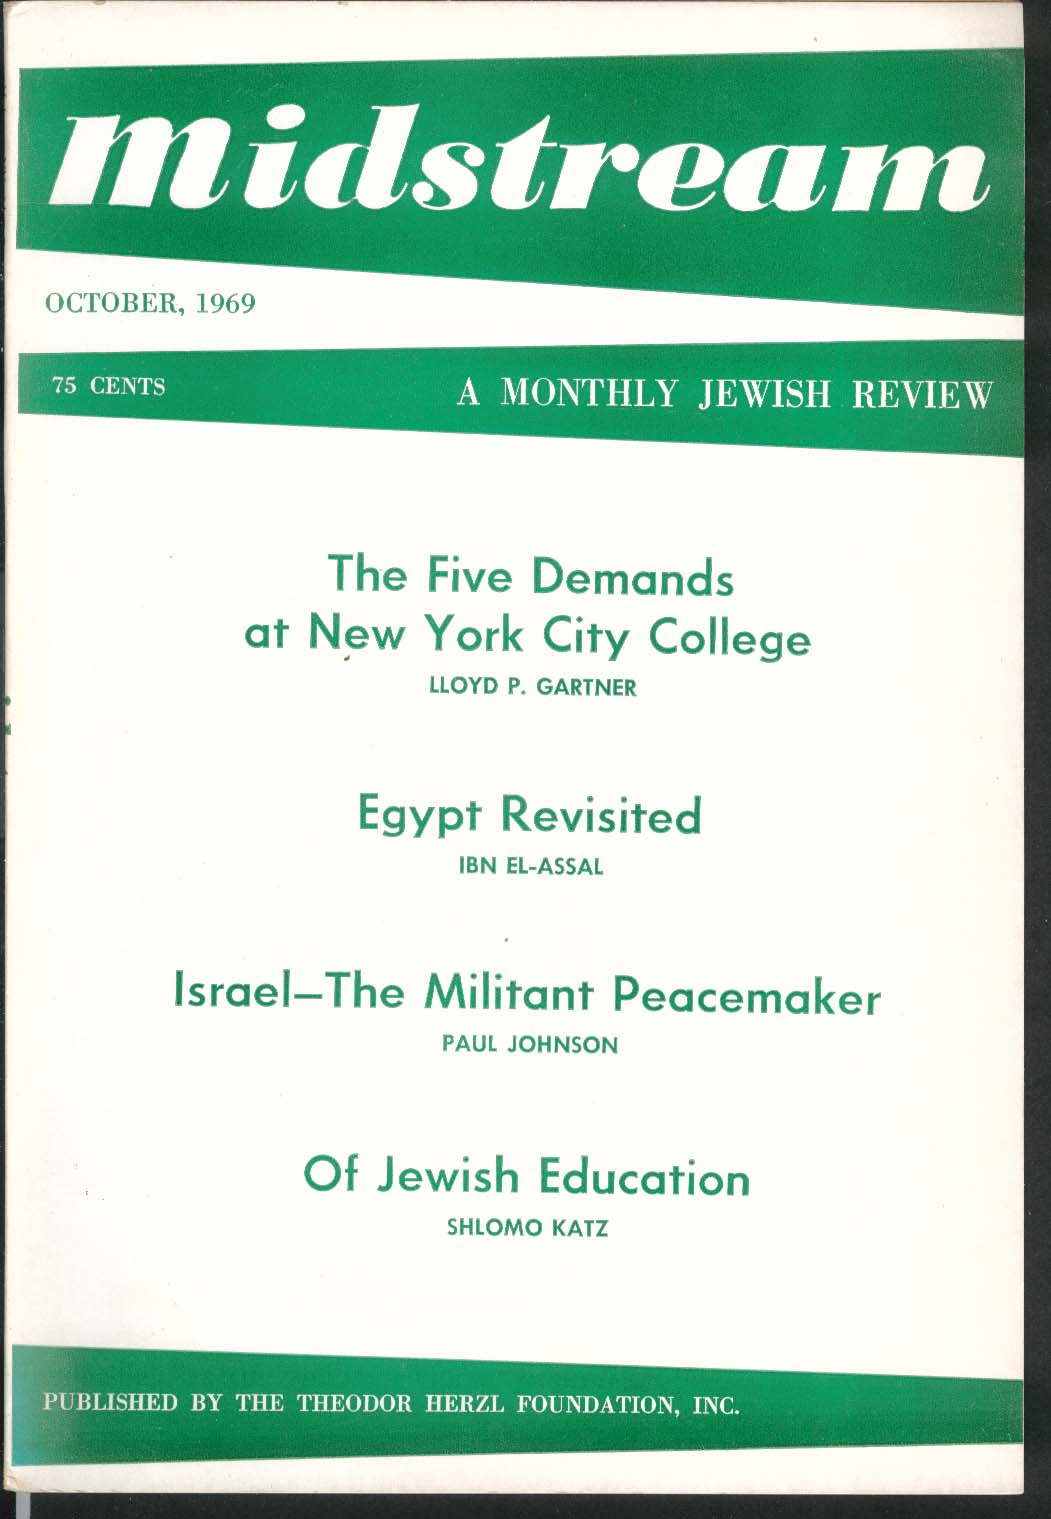 MIDSTREAM New York City College Egypt Israel Jewish Education 10 1969